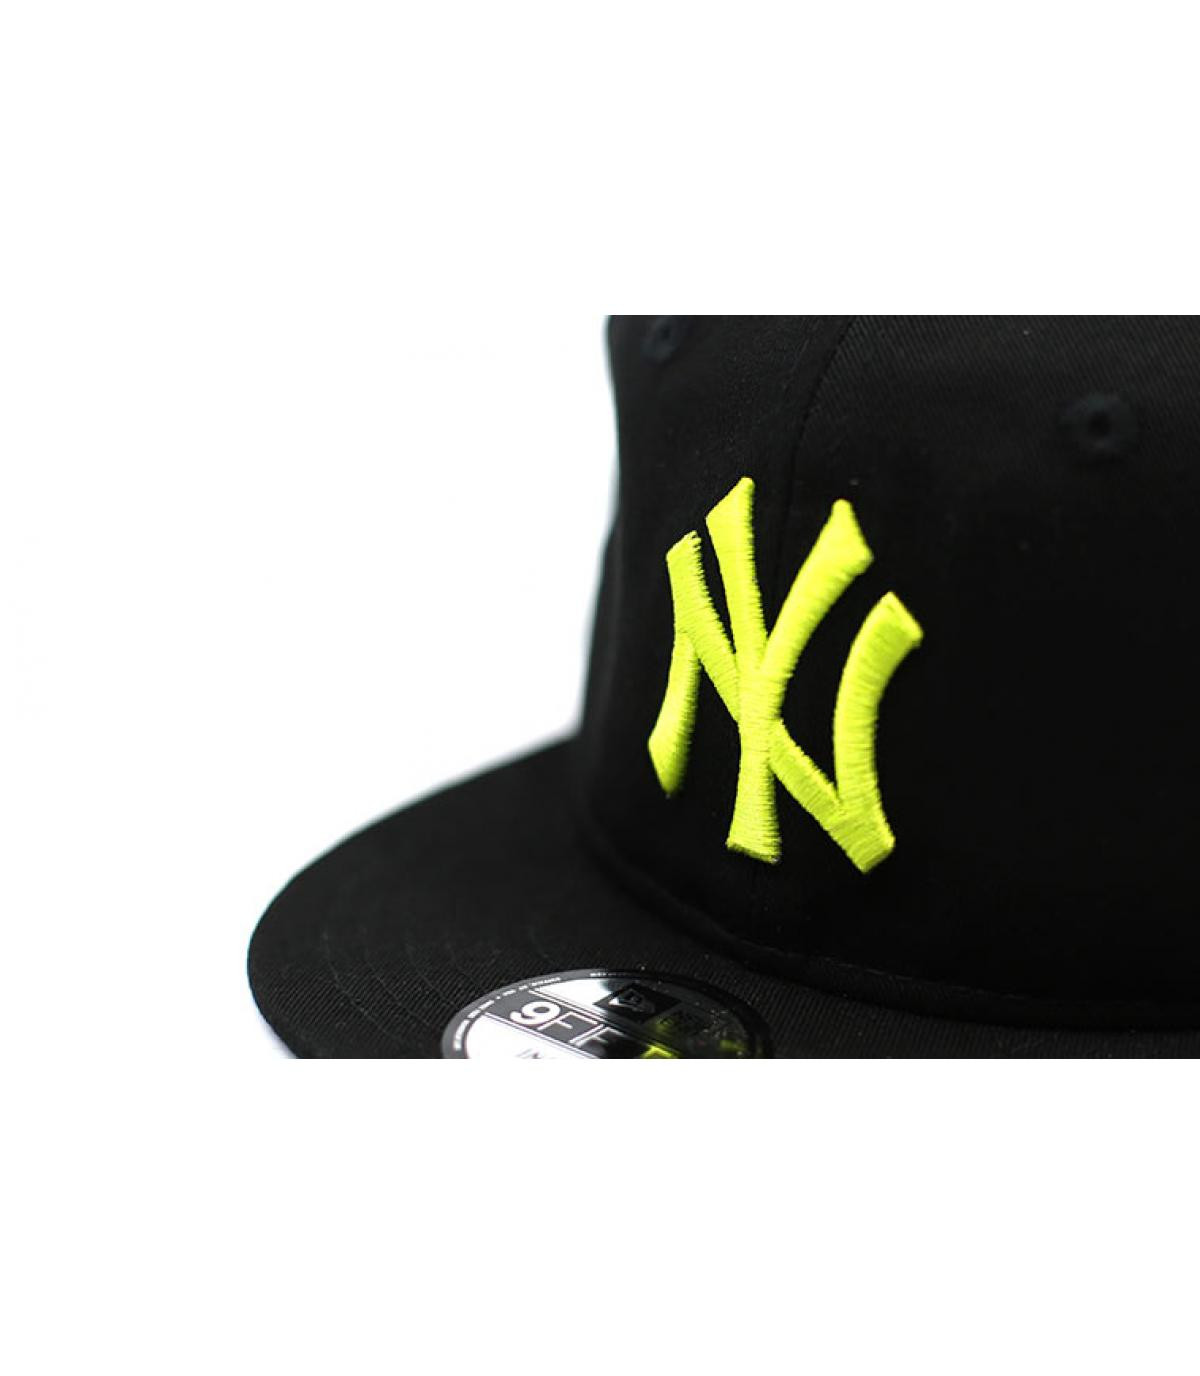 Details Baby League Ess NY 9Fifty black cyber yellow - afbeeling 3